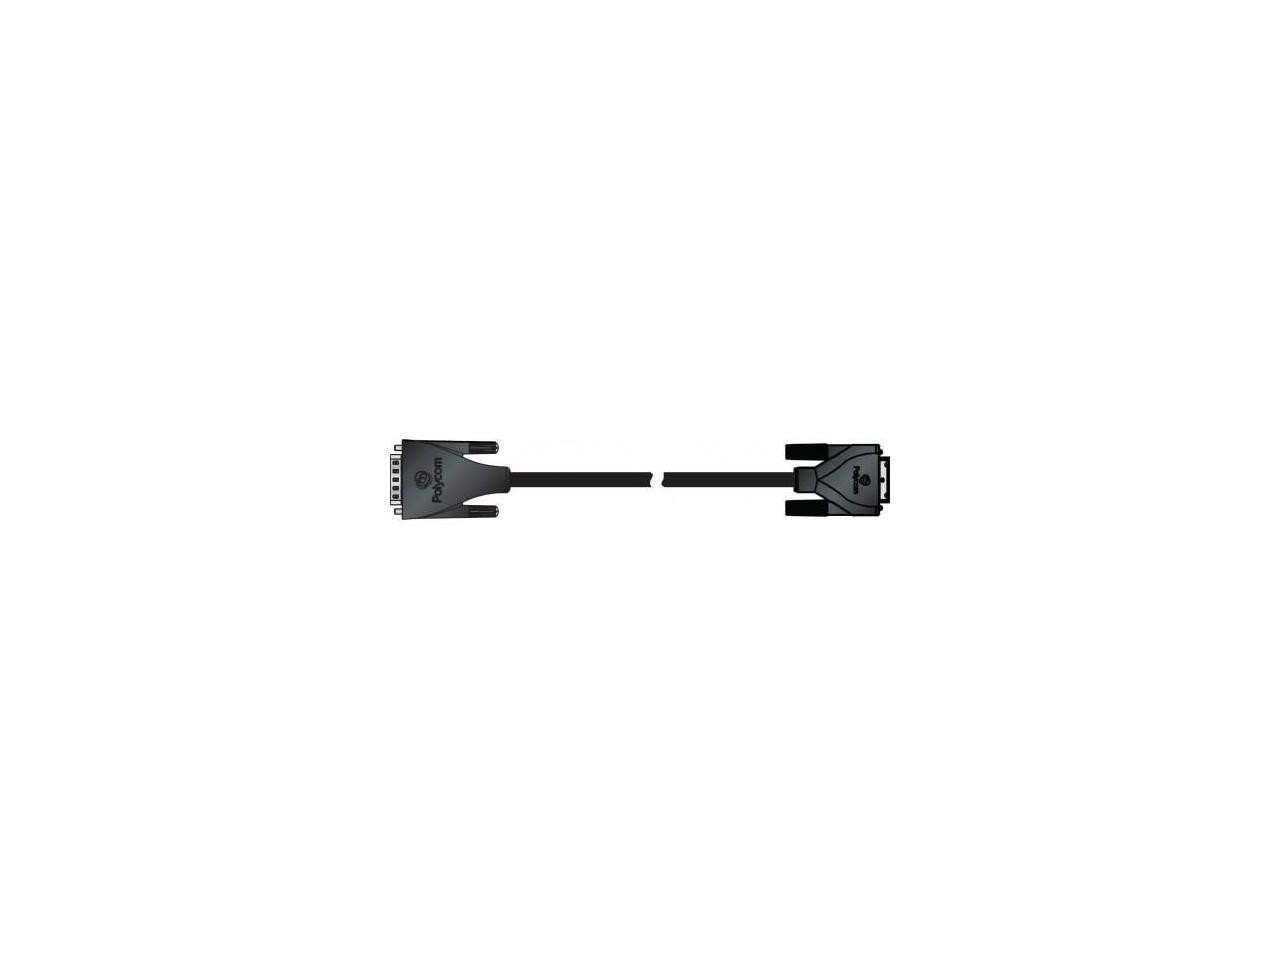 Polycom Mini-HDCI To Hdci Video Cable 2457-64356-101 10M For Eagle Eye IV Camera